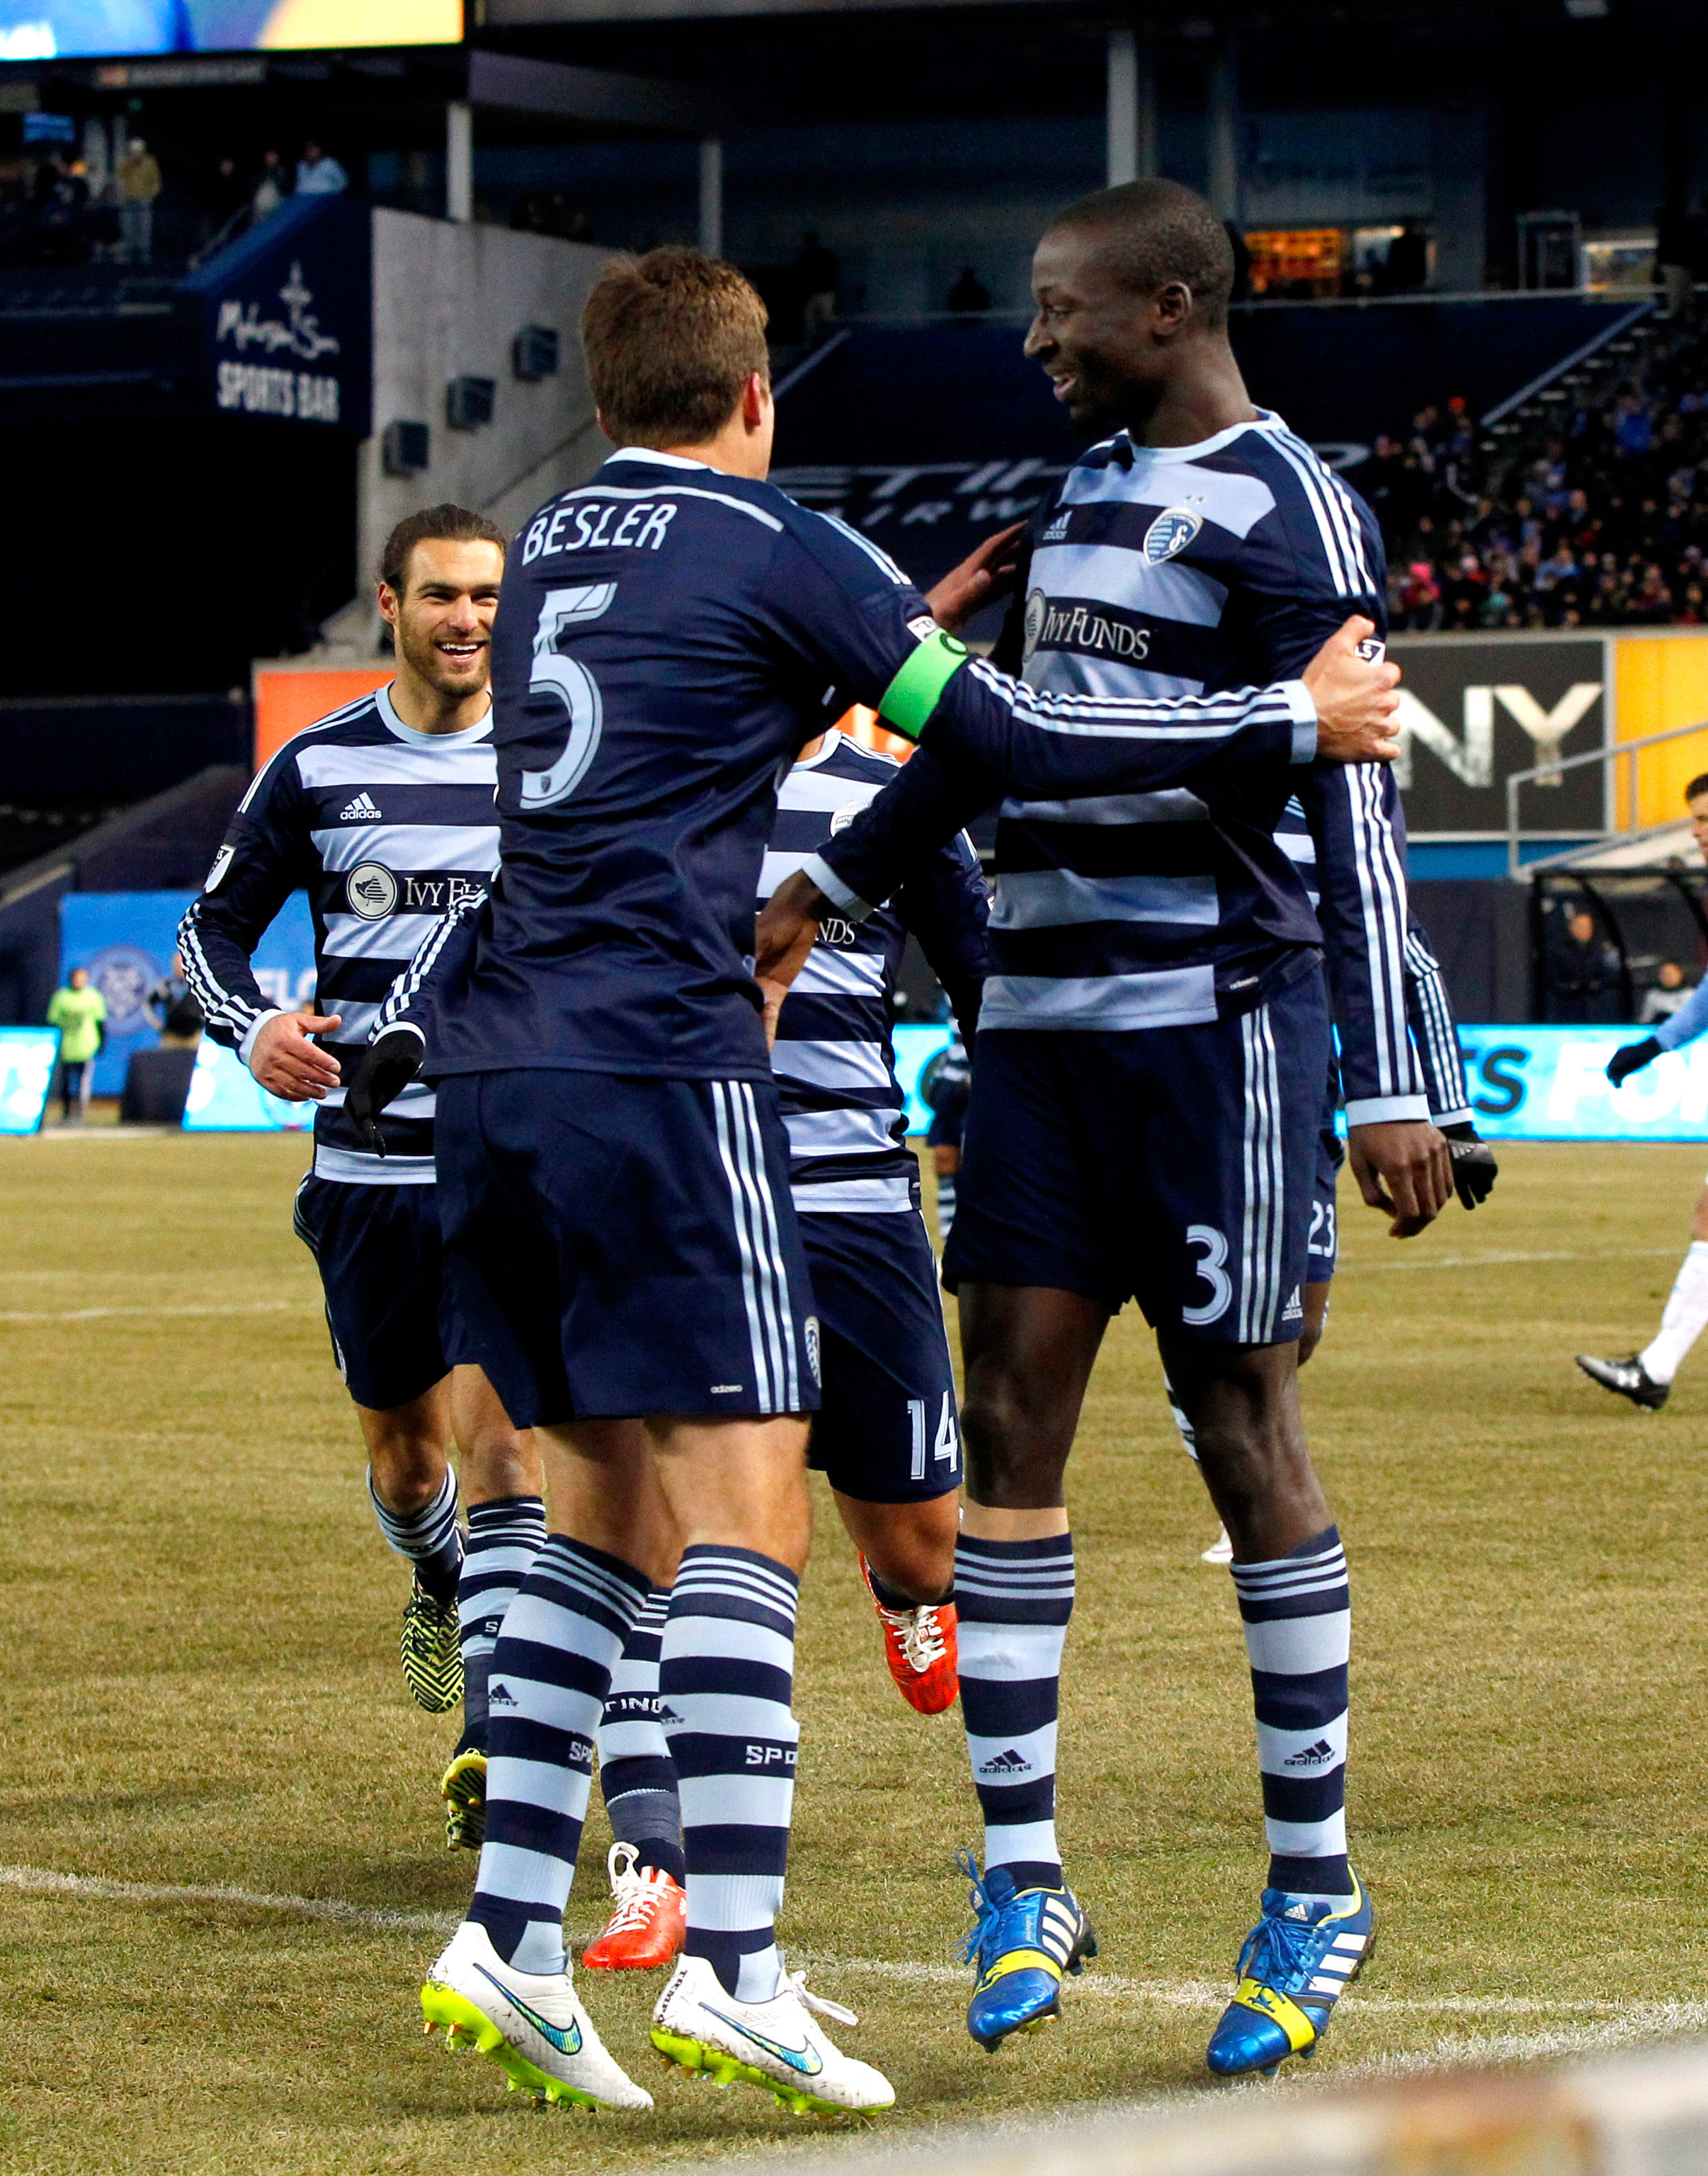 Sporting Kansas City's Ike Opara was this week's top Fantasy MLS scorer with 17 points with a goal and strong defensive showing against New York City FC.